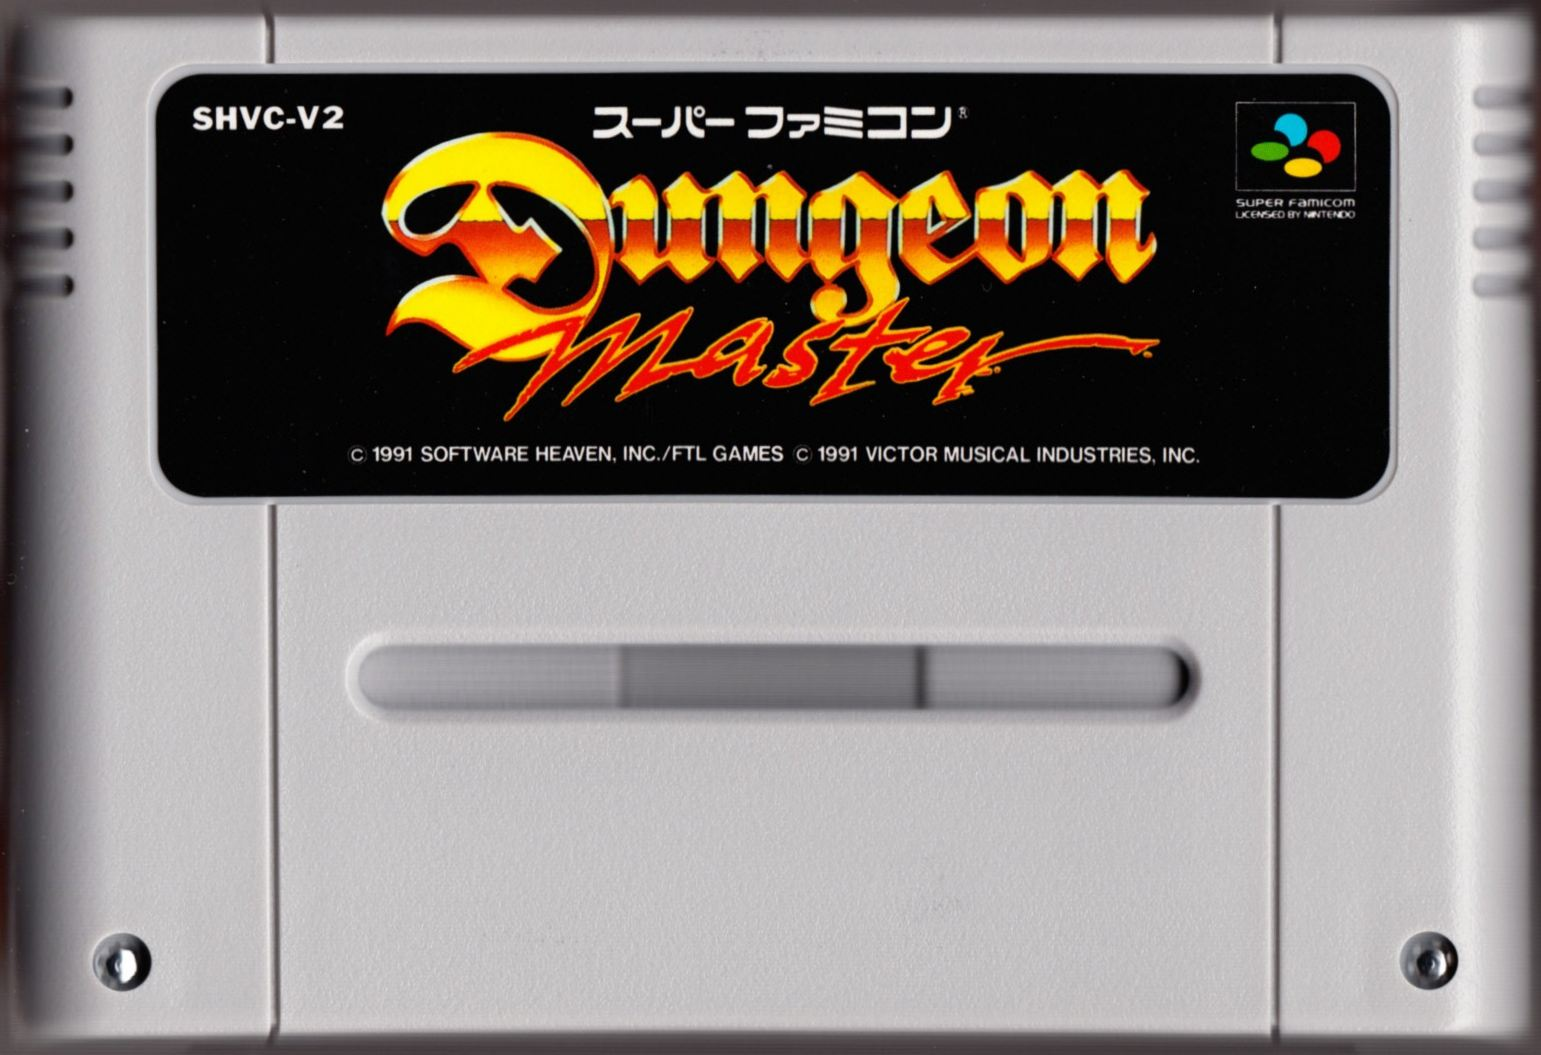 Game - Dungeon Master - JP - Super Famicom - Cartridge - Front - Scan